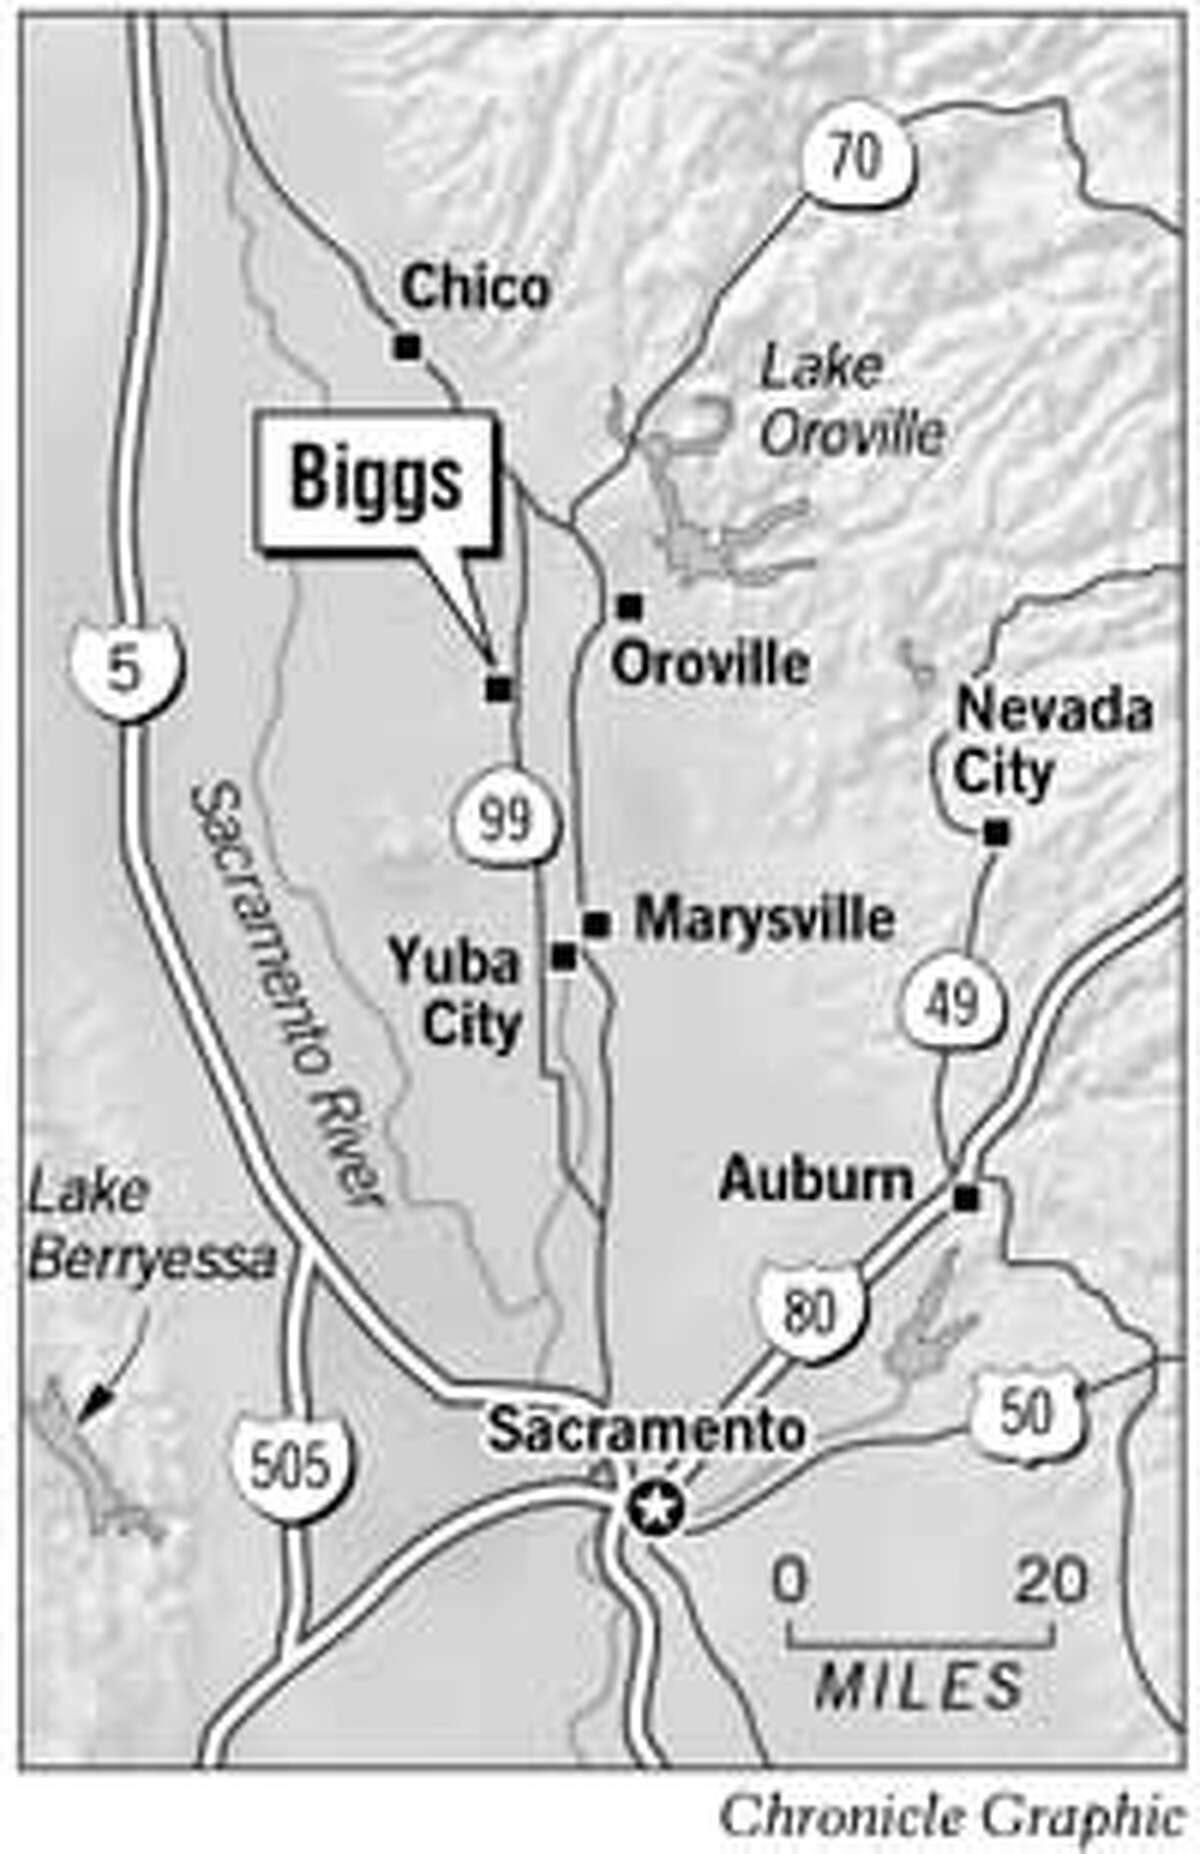 Lake Oroville Lake Berryessa 5 80 70 0 20 MILES Chico Marysville Oroville Nevada City Nevada City Auburn Yuba City Sacramento River 50 49 Sacramento Sacramento 505 Biggs Chronicle Graphic 99 Todd Trumbull Tuesday, October 29, 2002 10:36:20 PM FILE: Biggs got milk.m.mn.10/30 (in Deadline) PUB DATE: 10/30/02 PAGE: A11 EDITION: 3s CHRONICLE MAKEUP Pub date: 10/30/02 Page: A11 Edition: 3s